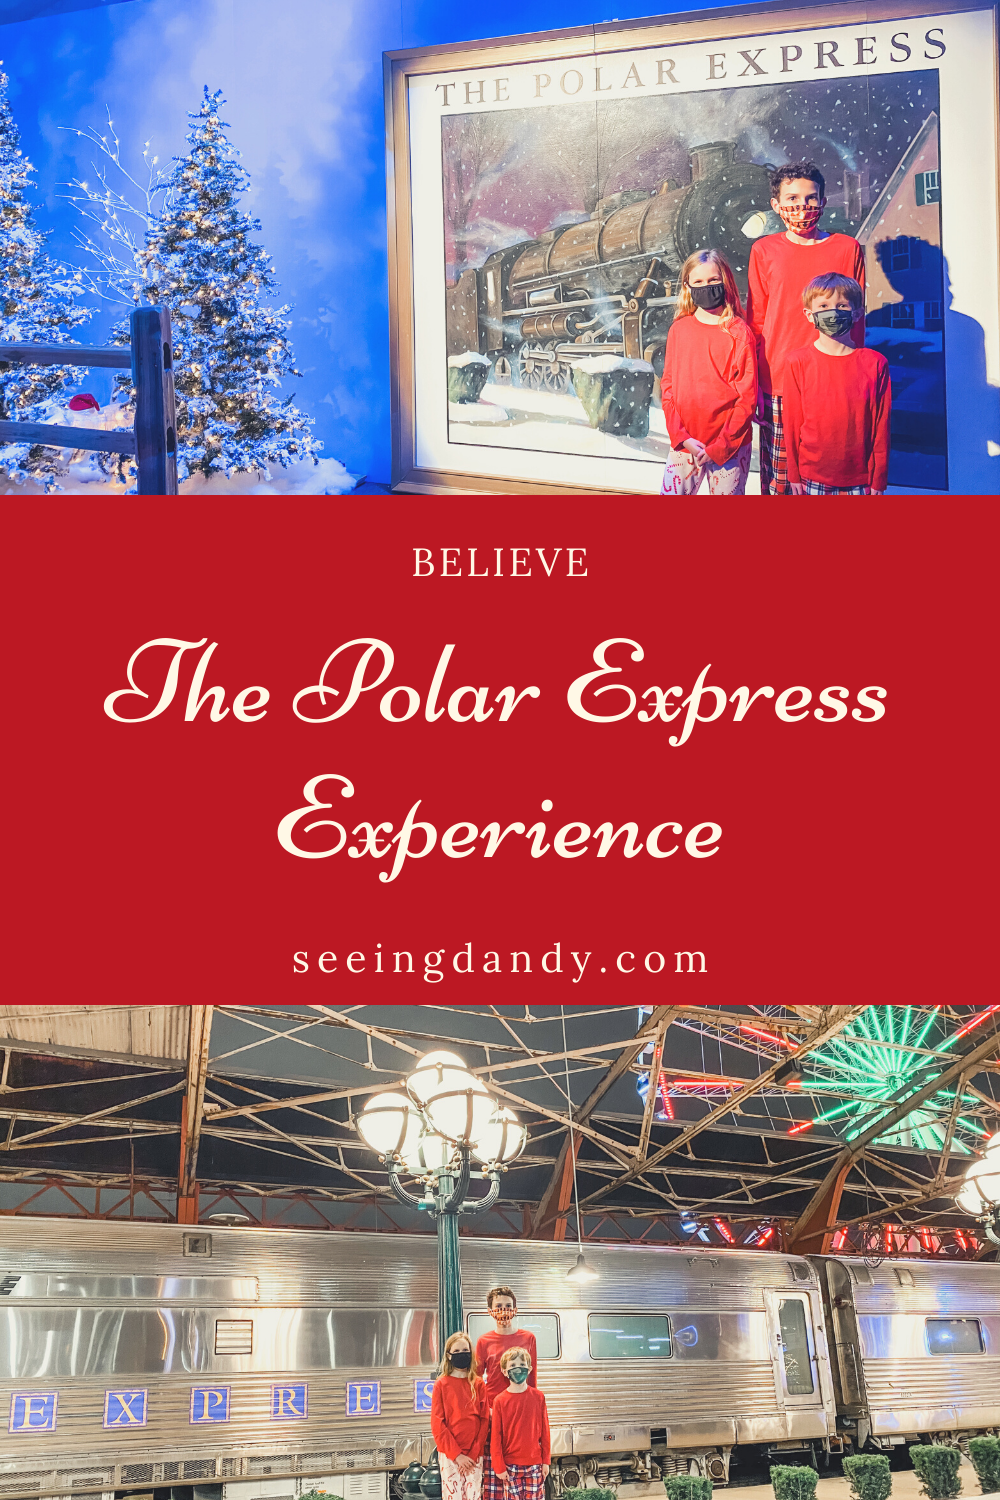 believe polar express experience, st louis union station, st louis family fun, polar express train, holiday fun, family christmas tradition, polar express, st louis wheel, union station train yard